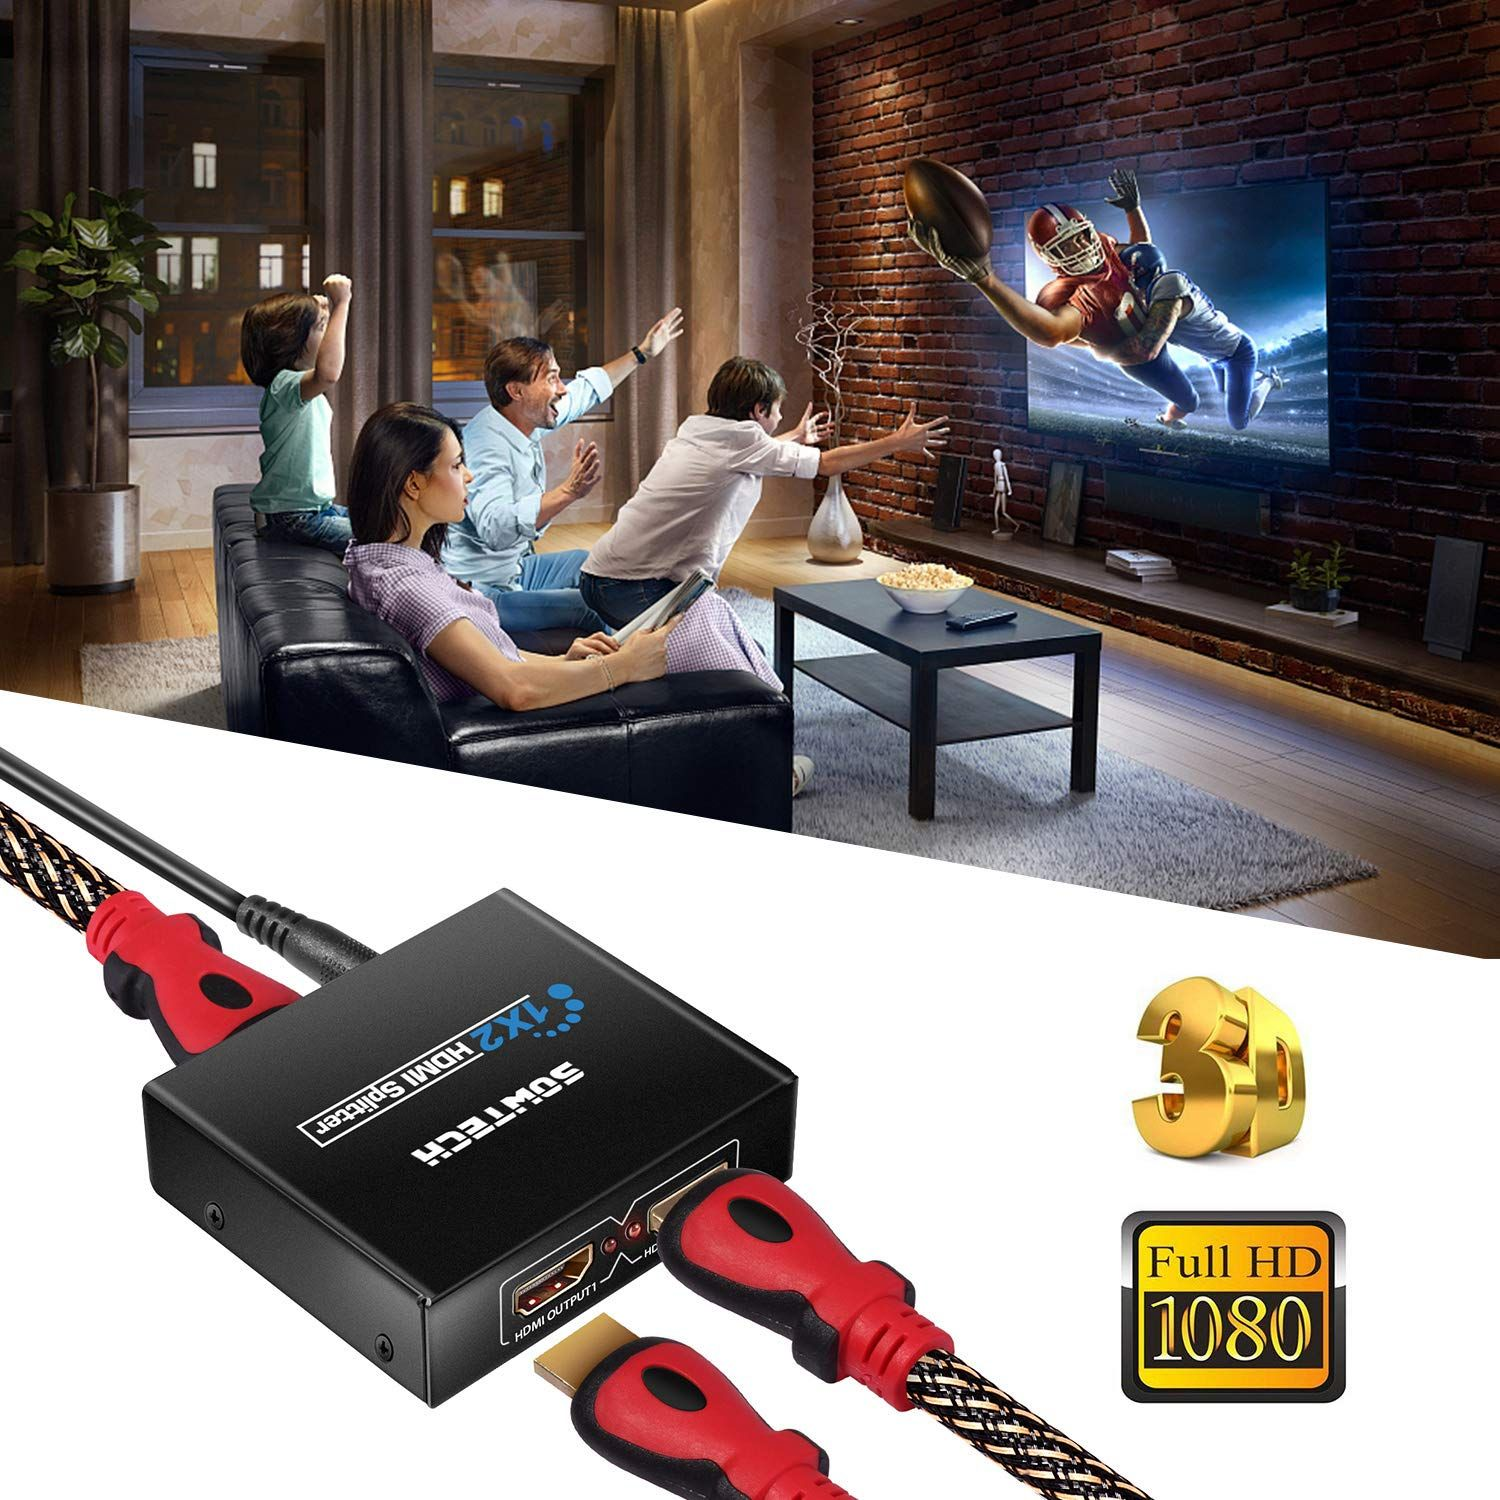 SOWTECH 1X2 HDMI Splitter Version 1 4 Full HD 1080P Powered HDMI